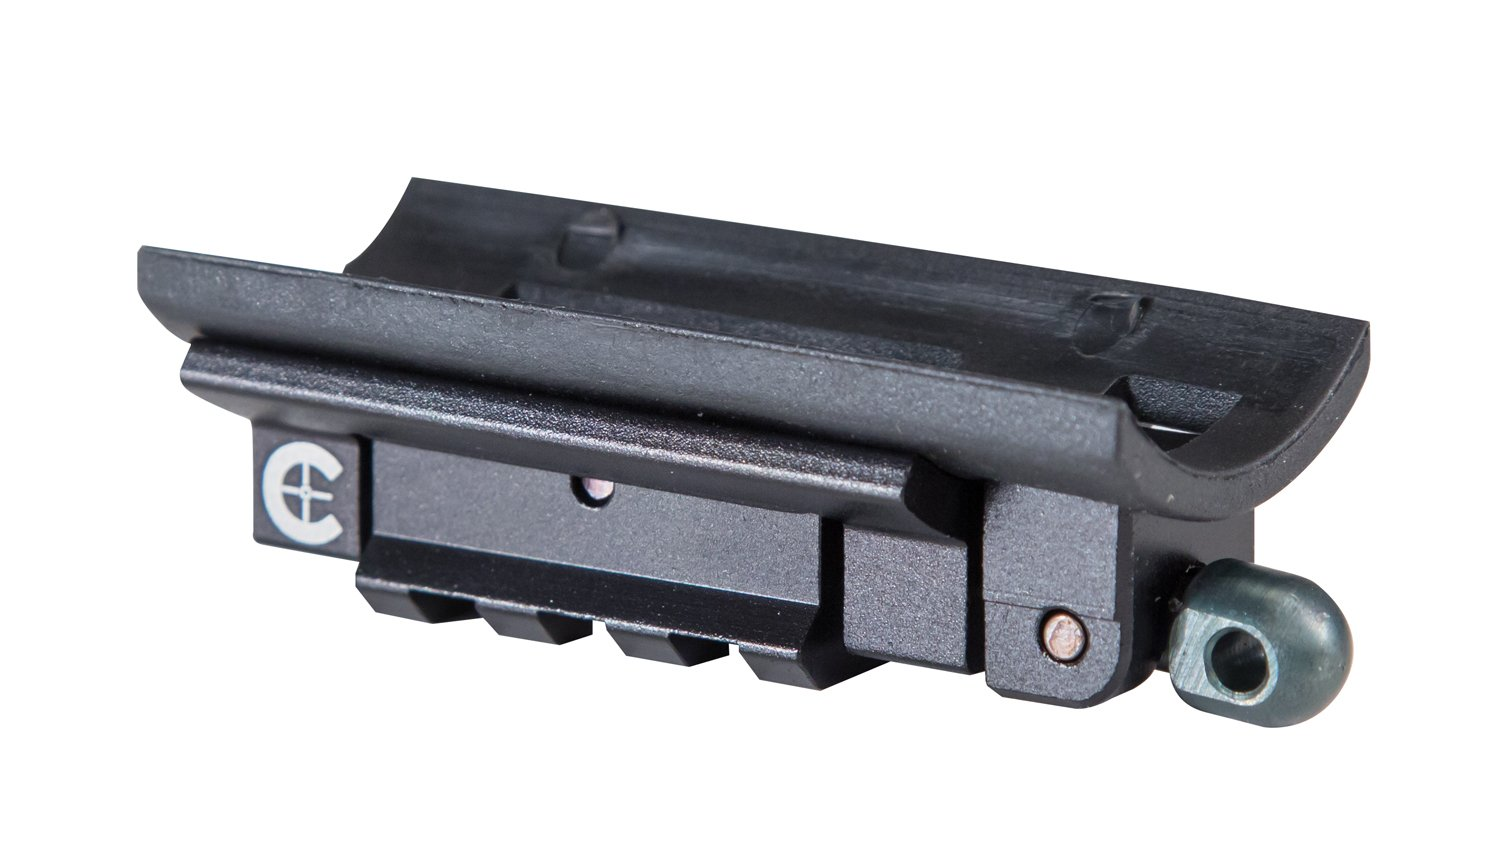 Caldwell Pic Rail Adaptor Plate with Durable Construction and Picatinny Rail Attachment for Outdoor, Range, Shooting and Hunting by Caldwell